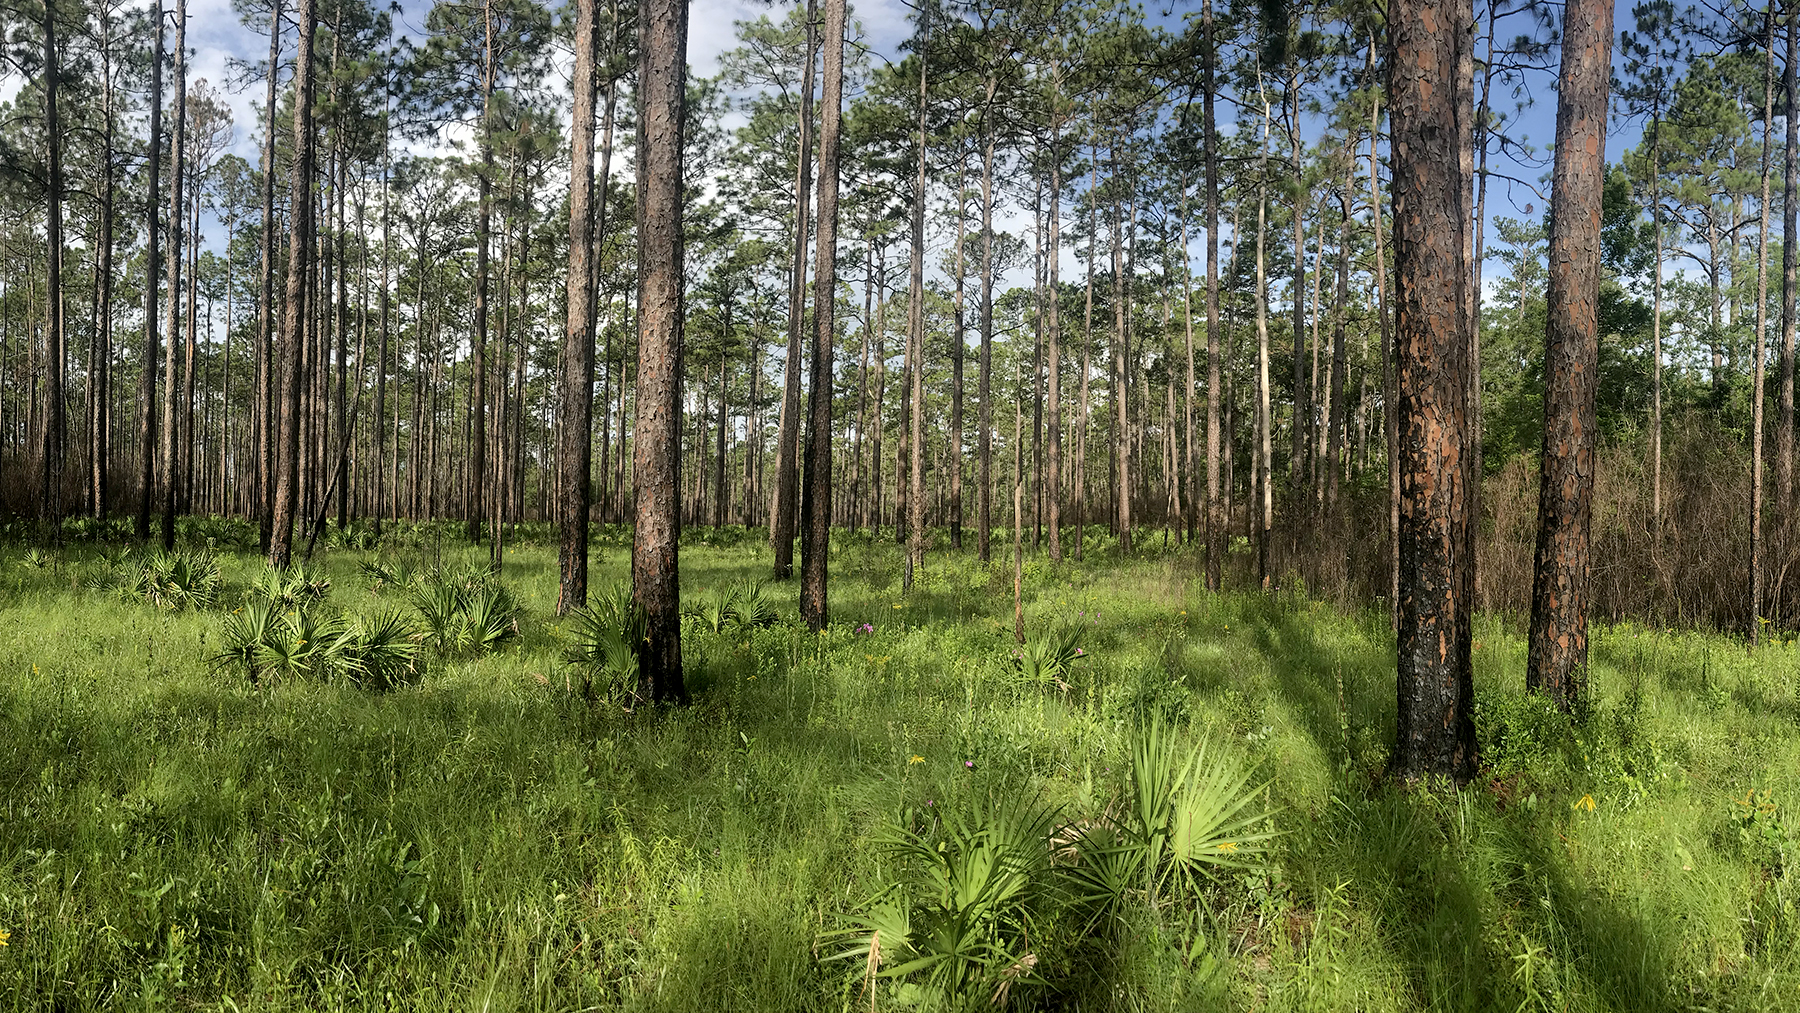 3.	Wildflowers bloom in the recently burned understory of the pine flatwoods of Floridas Apalachicola National Forest.